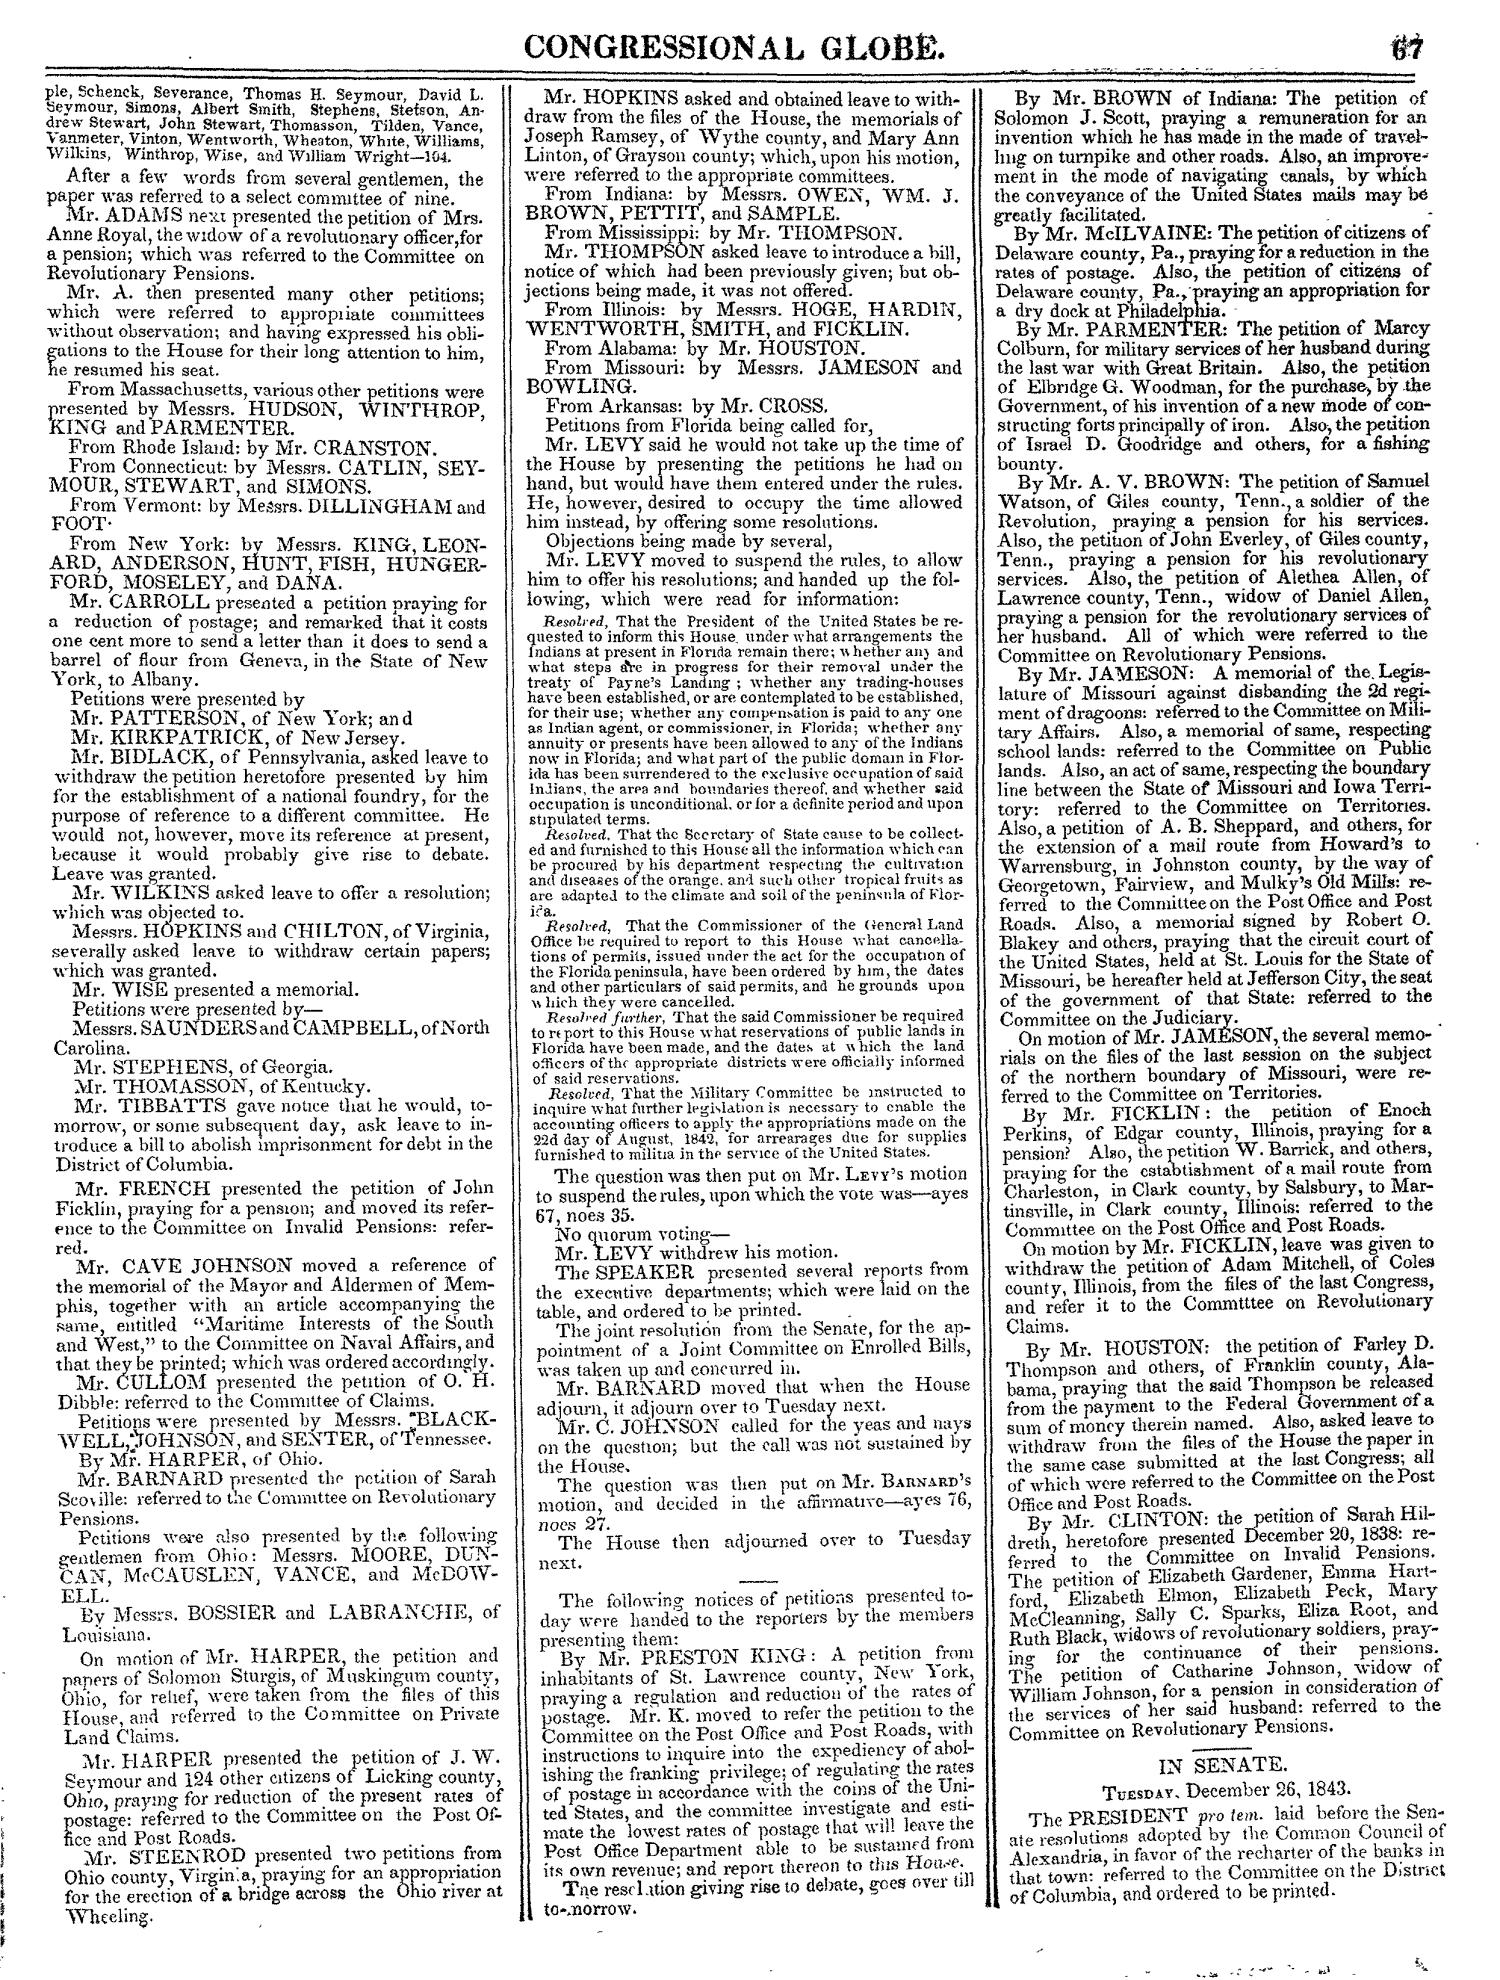 The Congressional Globe, Volume 13, Part 1: Twenty-Eighth Congress, First Session                                                                                                      67